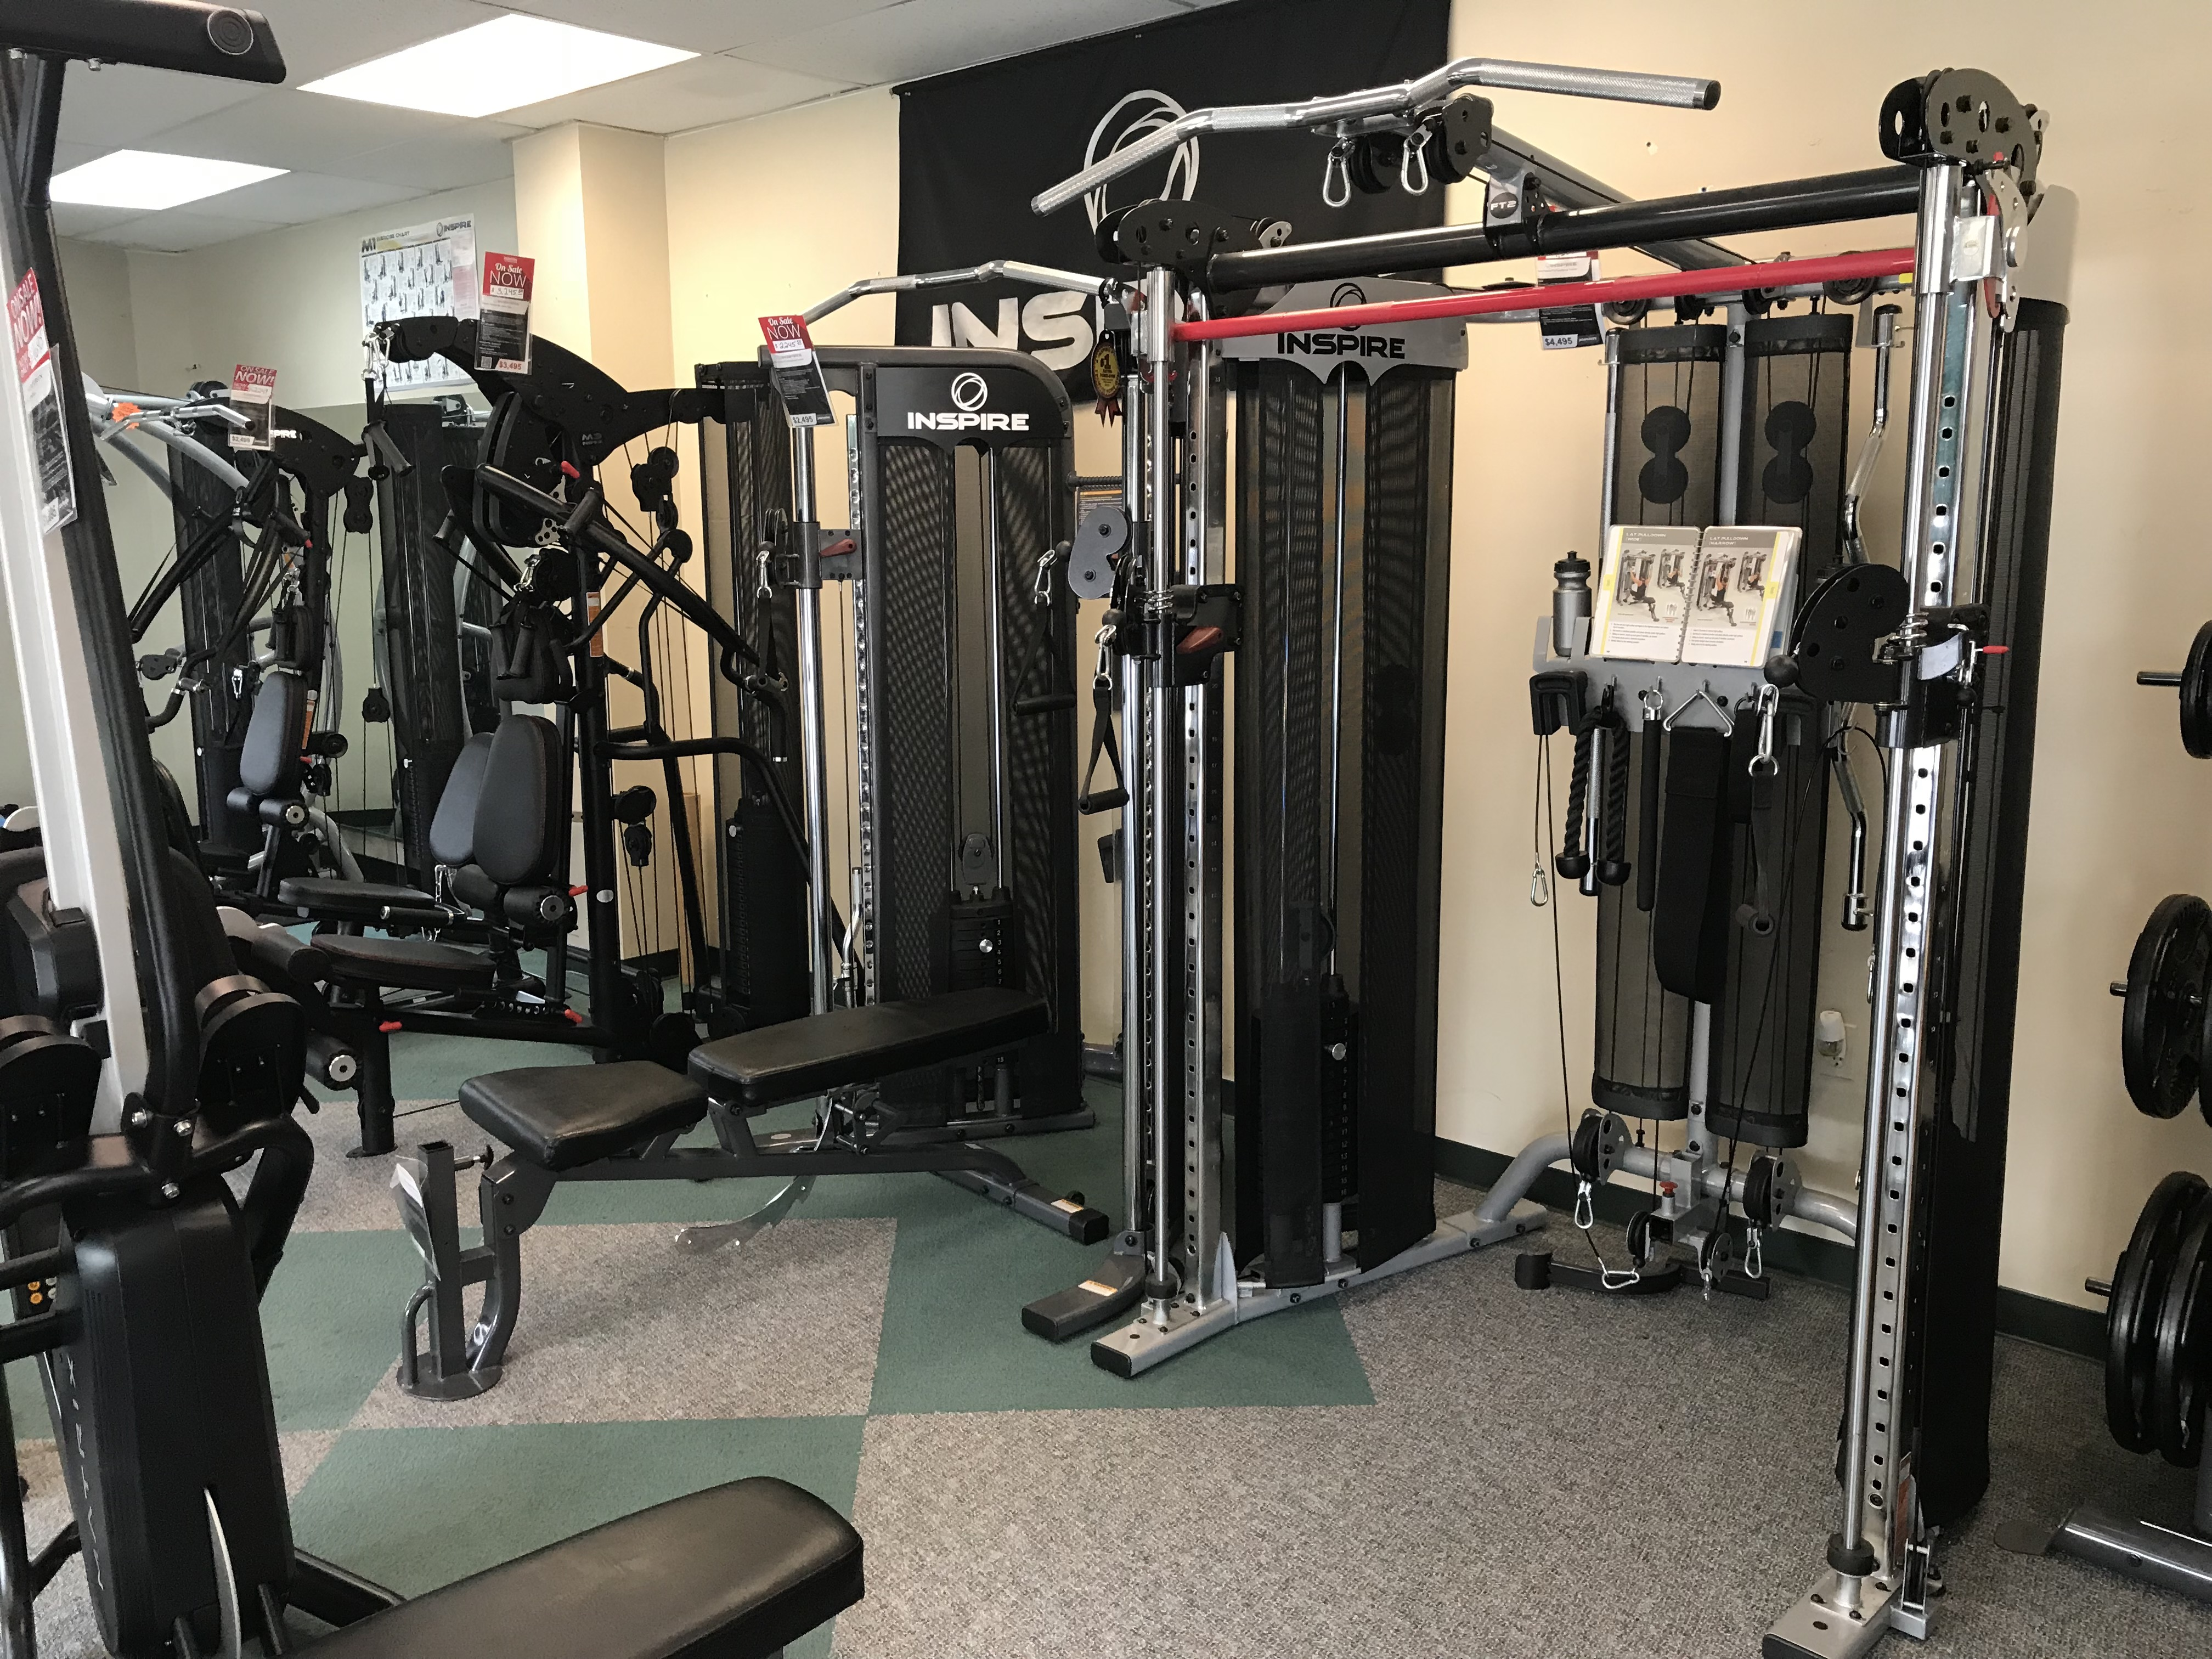 Leisure Fitness - Cockeysville, MD